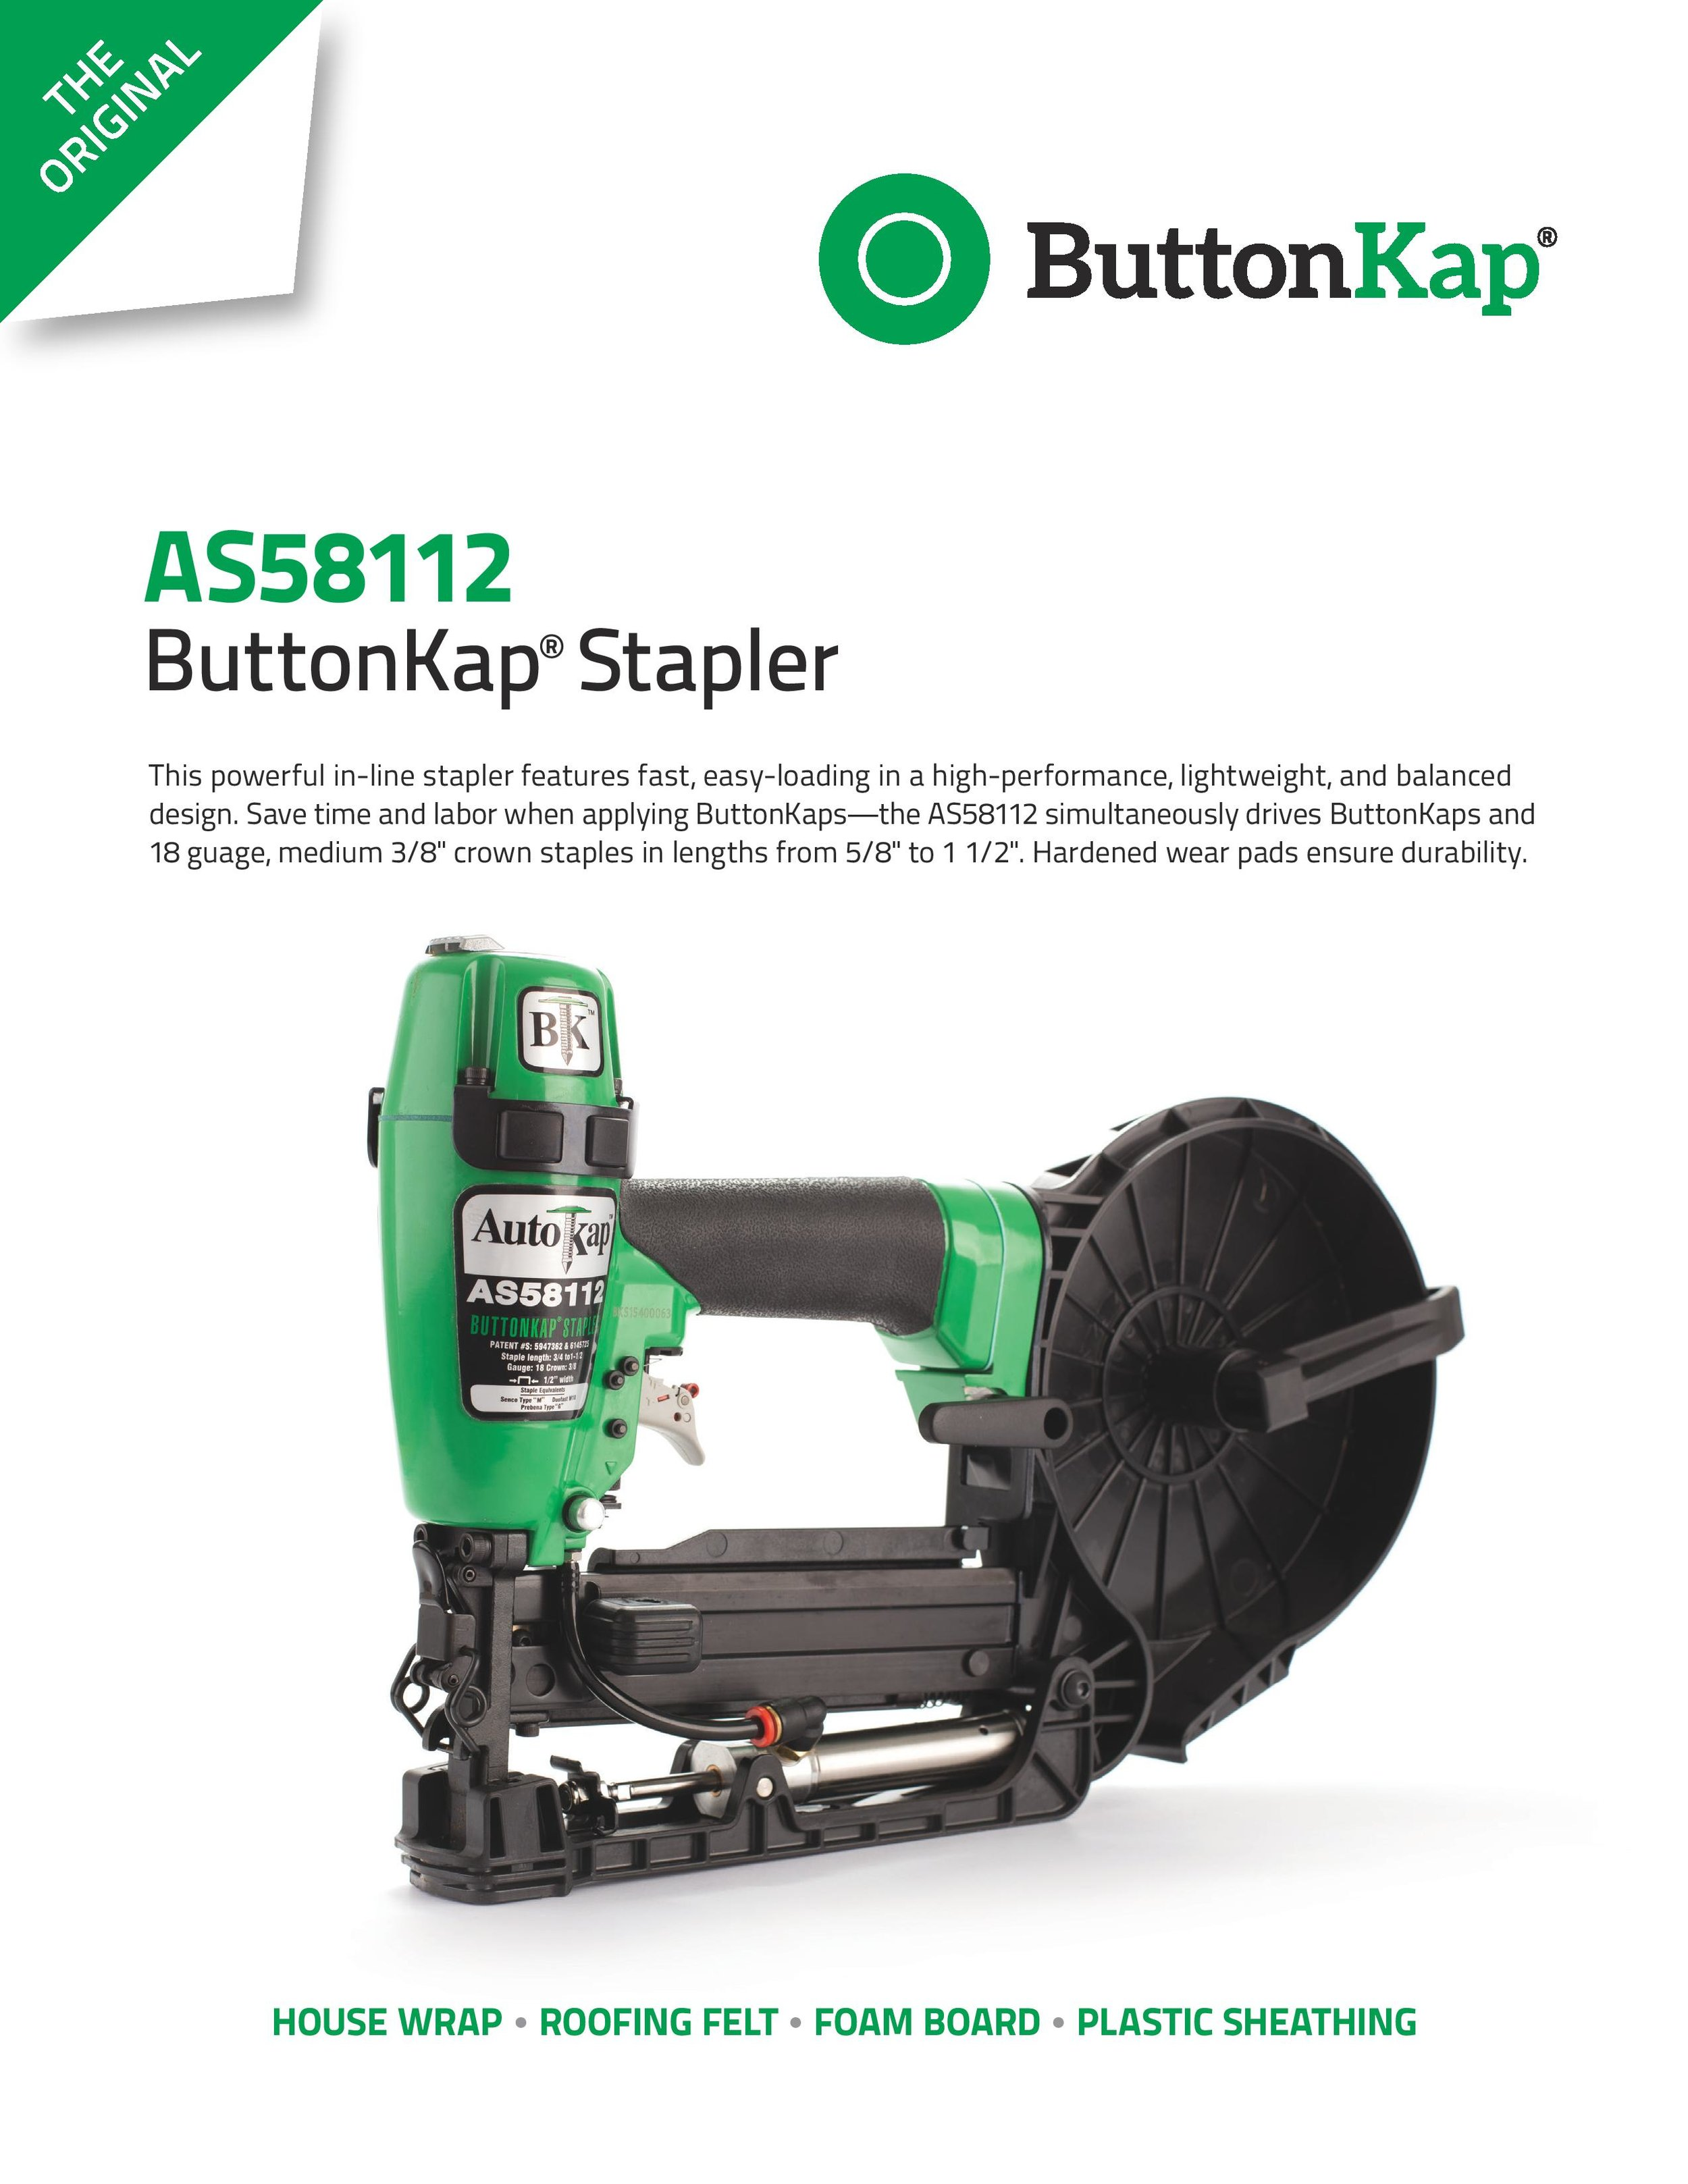 Button_Kap_As58112_Stapler_Sheet-page-001.jpg